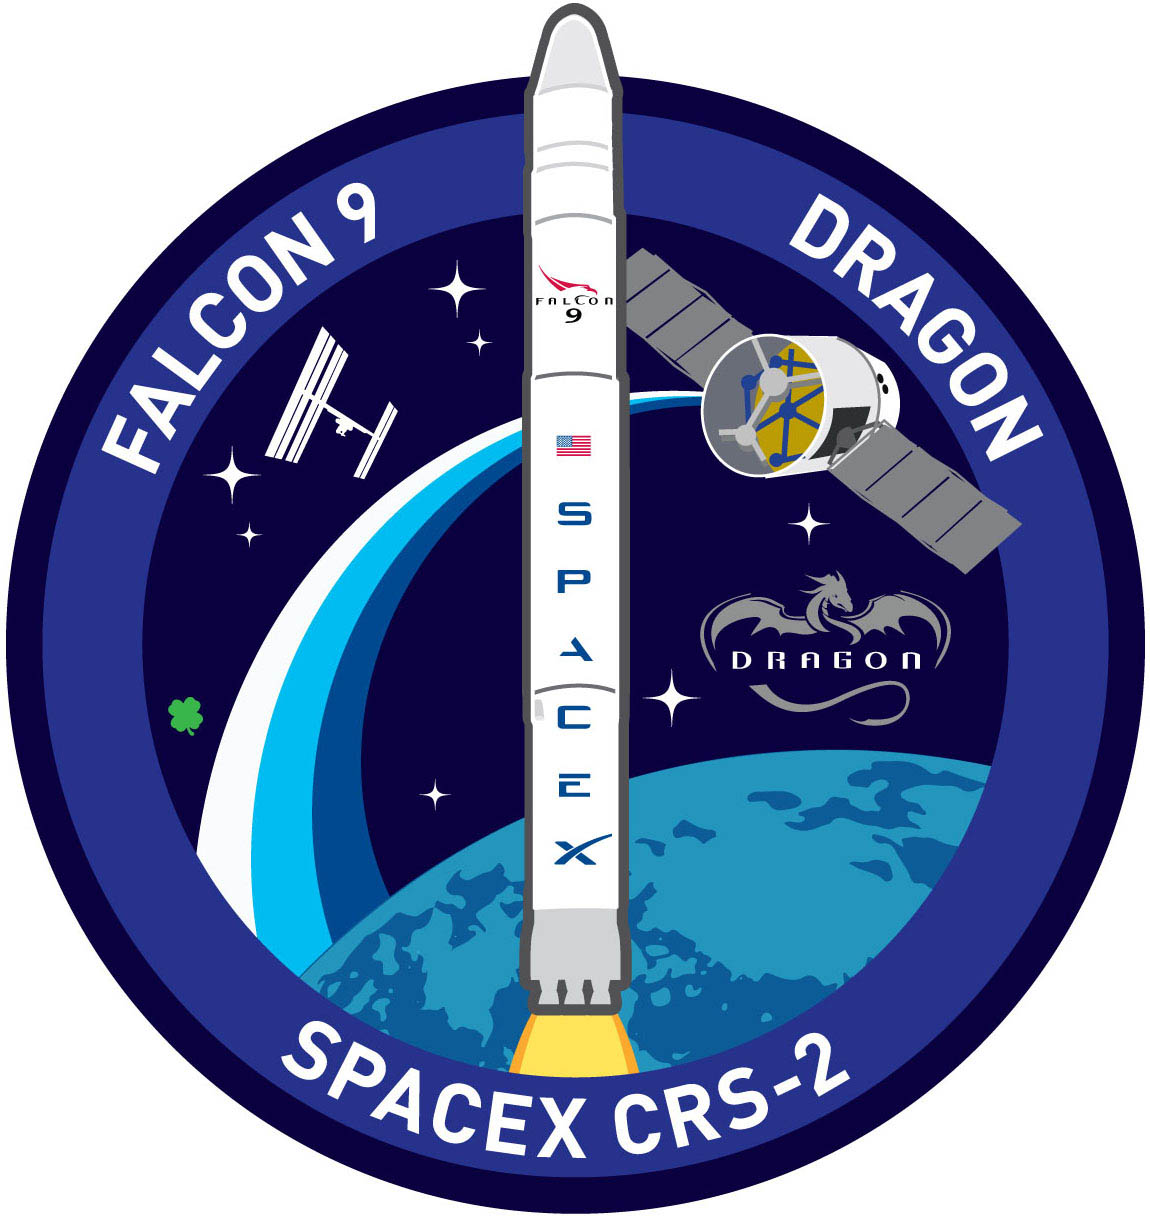 SpaceX's CRS-2 Mission Patch